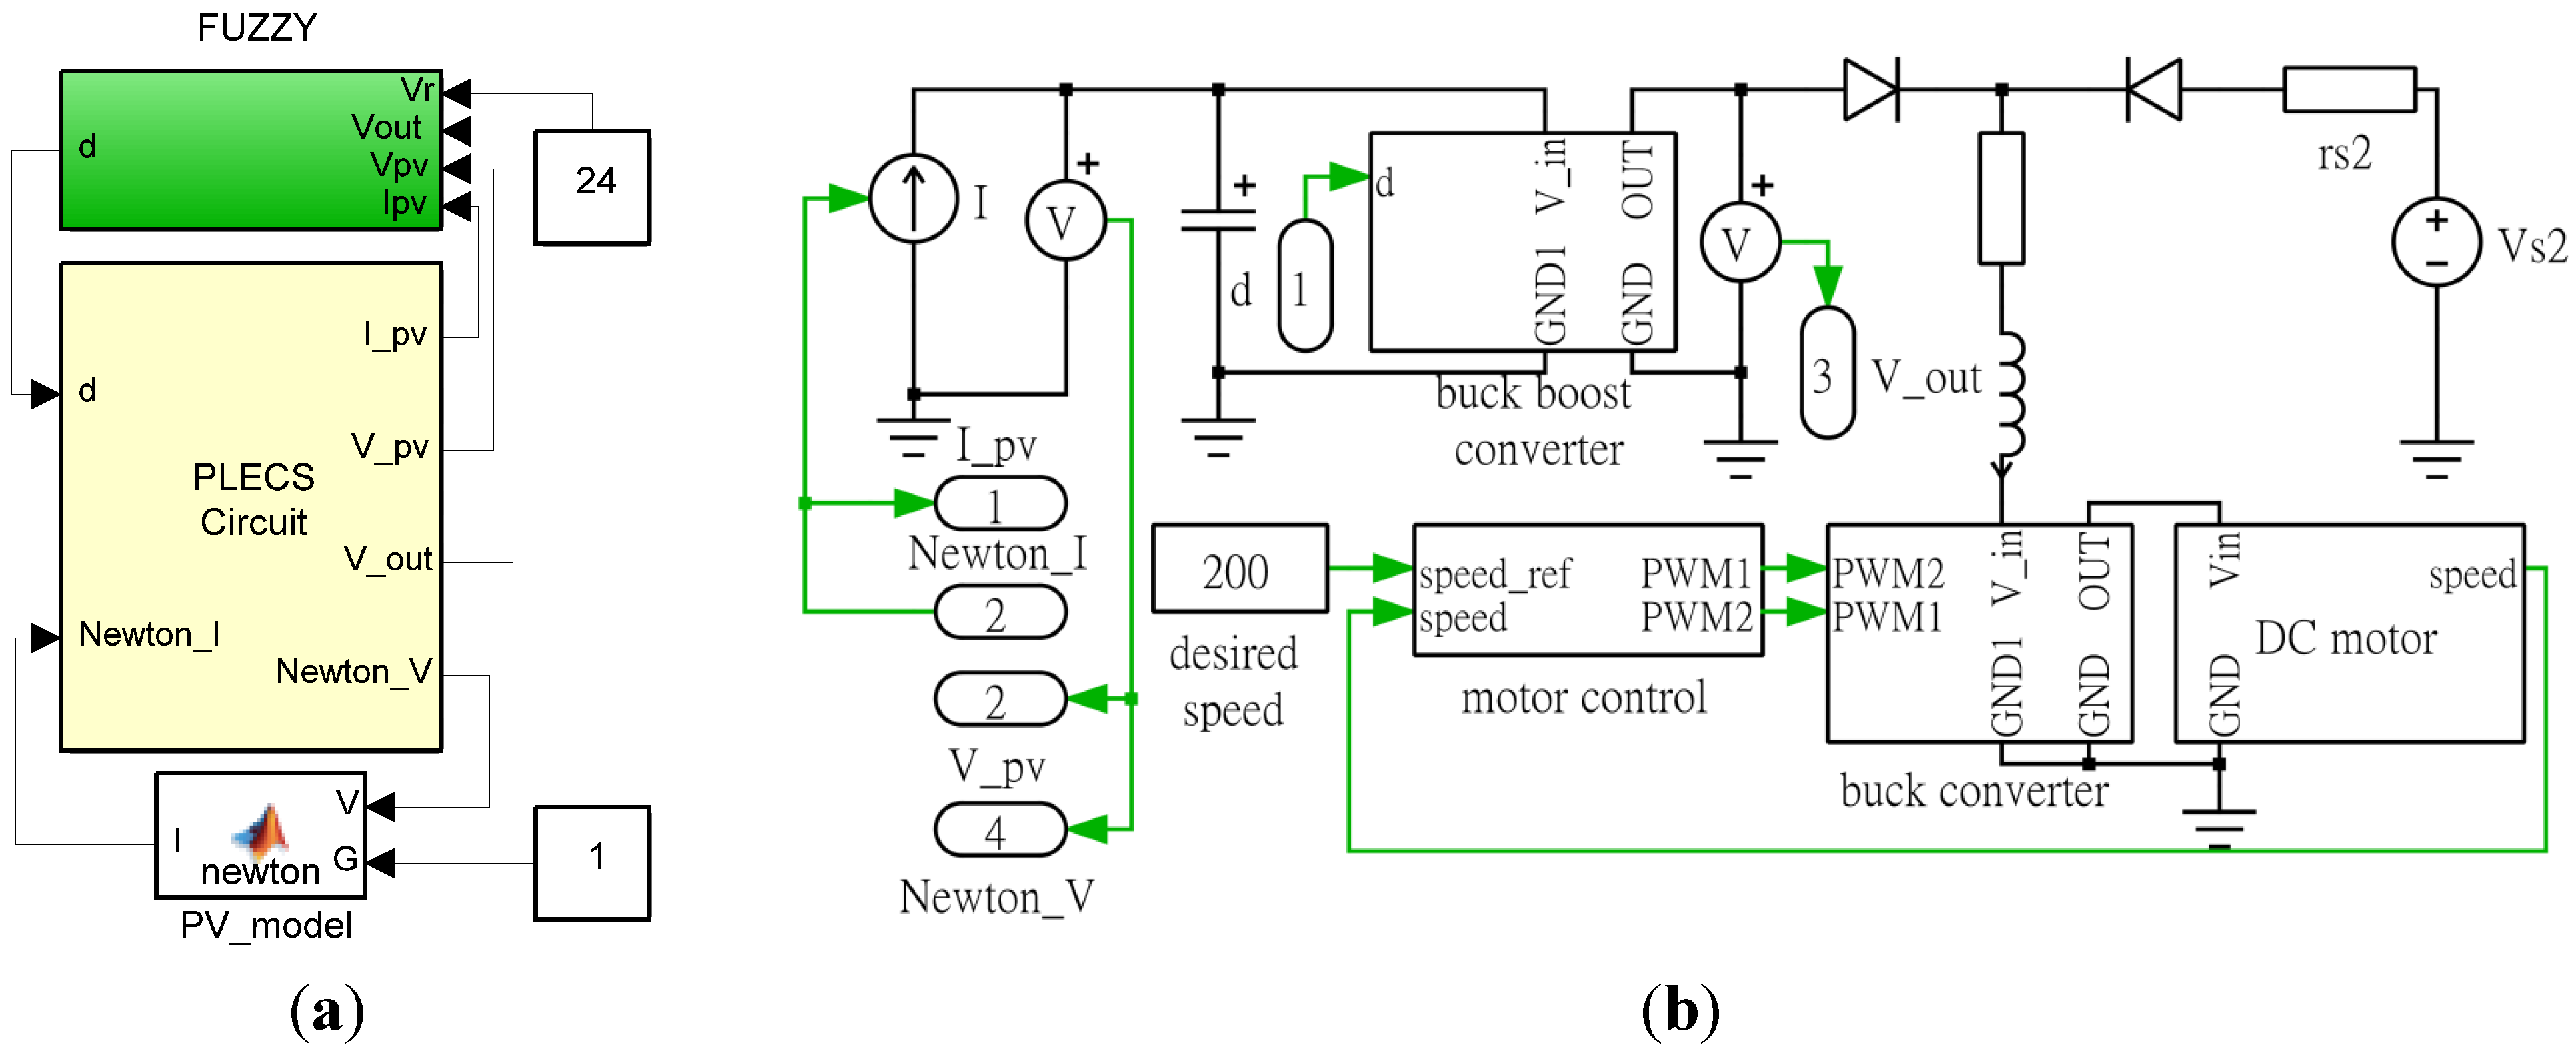 Energies Free Full Text Fuzzy Controller For A Voltage Regulated Electrical Circuit Dummies No